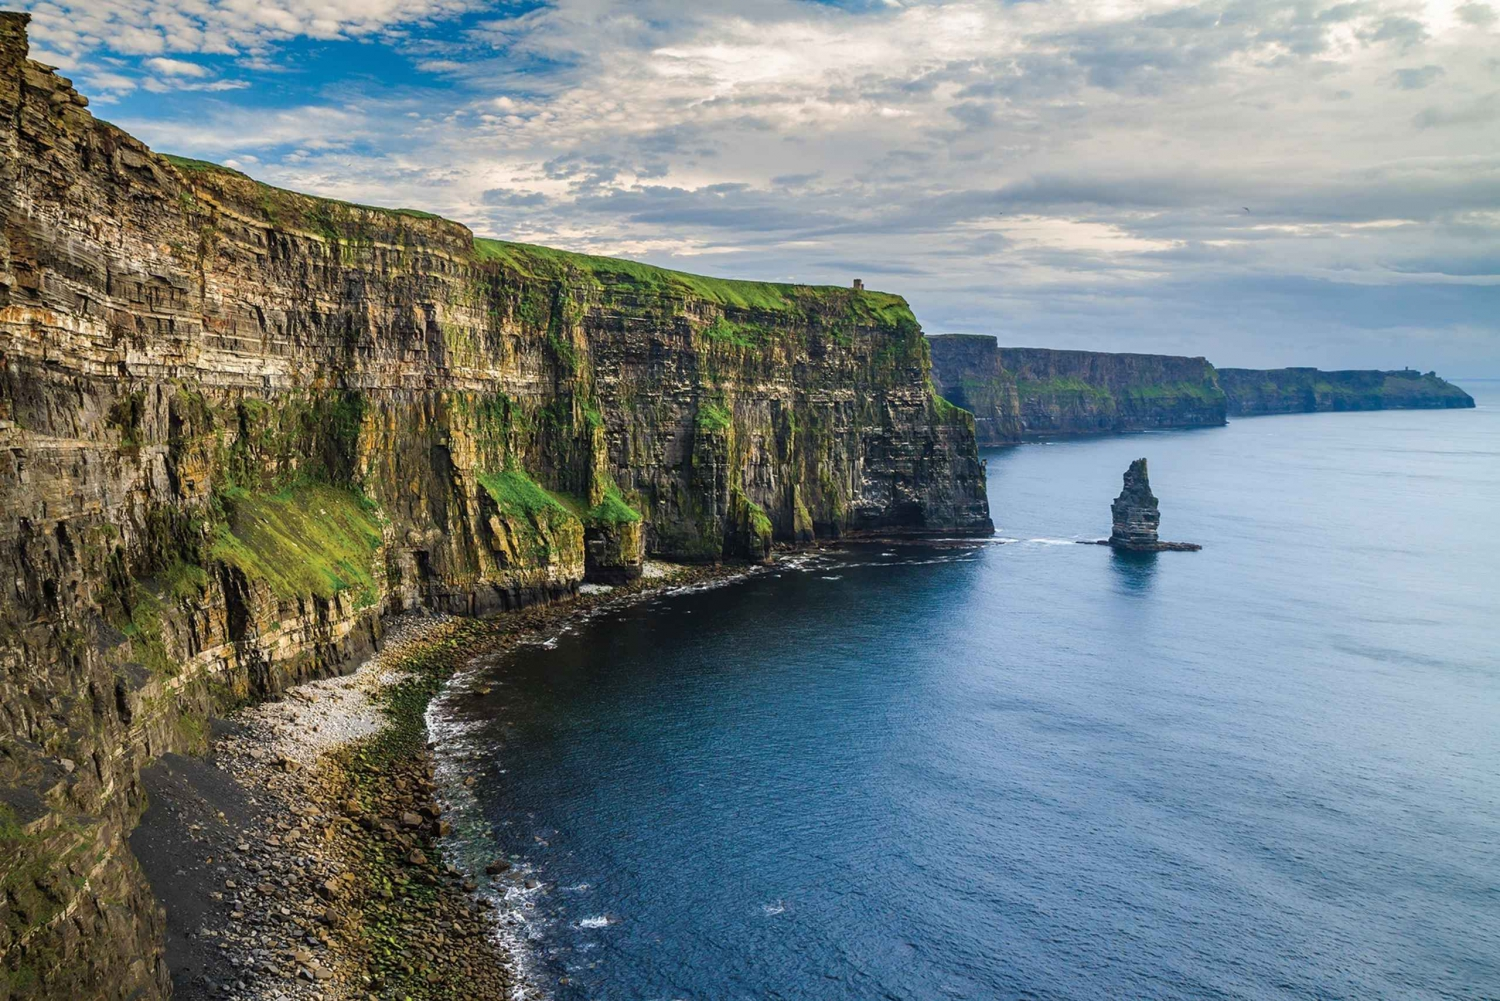 Tour to the Cliffs of Moher & Doolin from Dublin